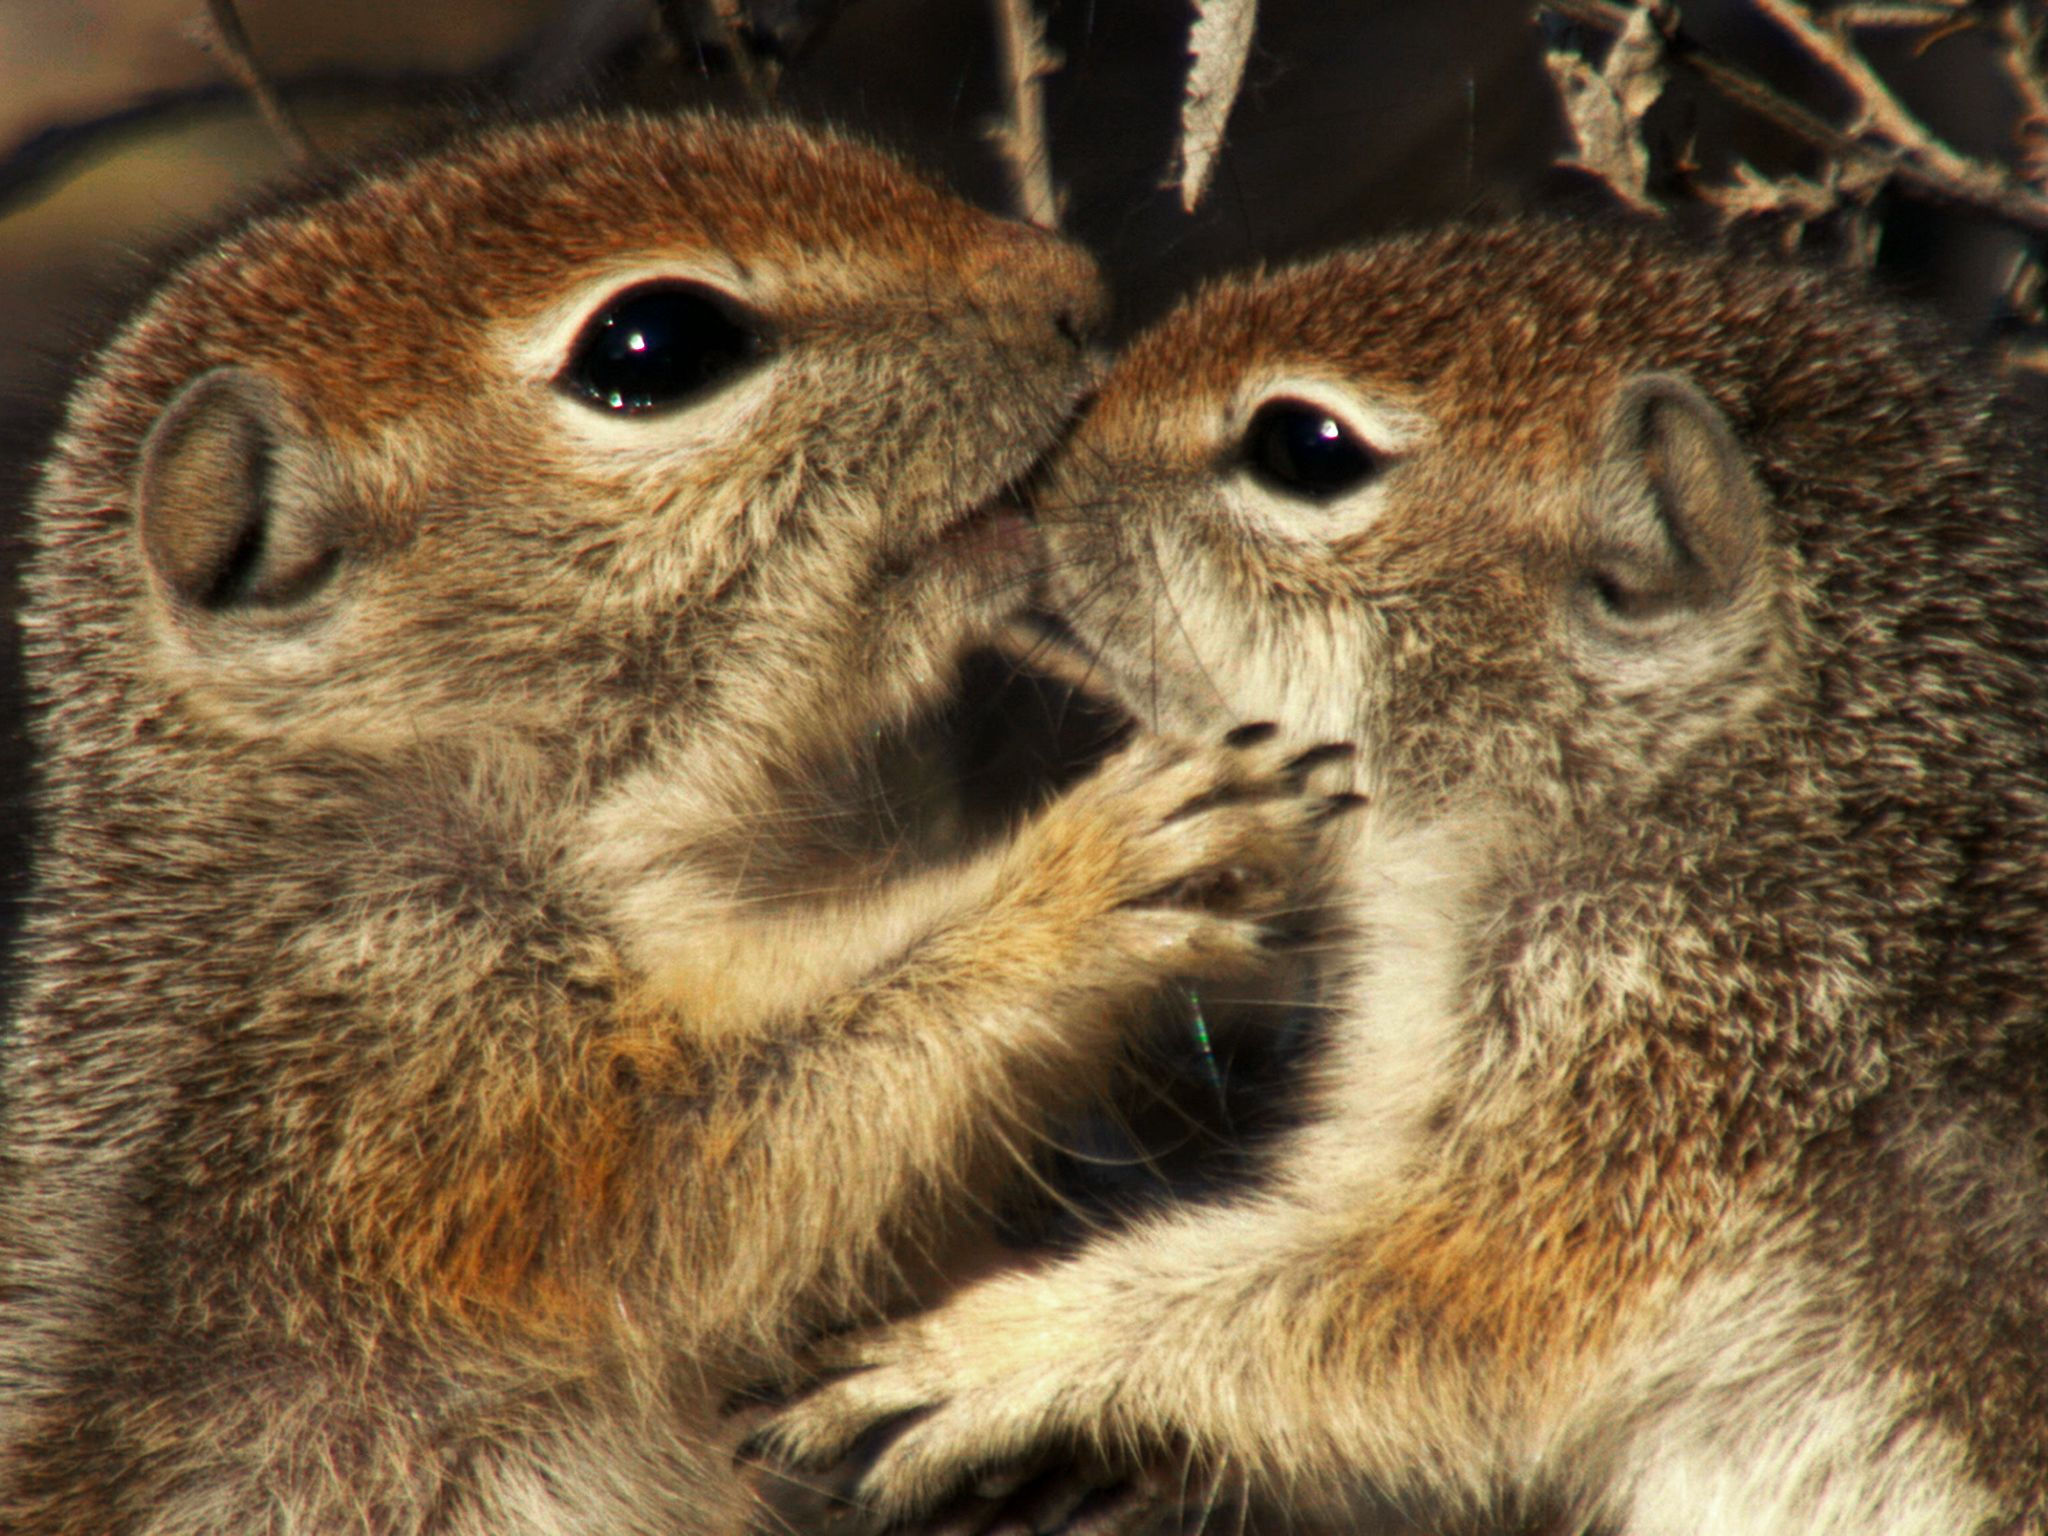 Saguaro National Park, Arizona: Young antelope squirrels play with each other. This image is... [Photo of the day - فوریه 2016]